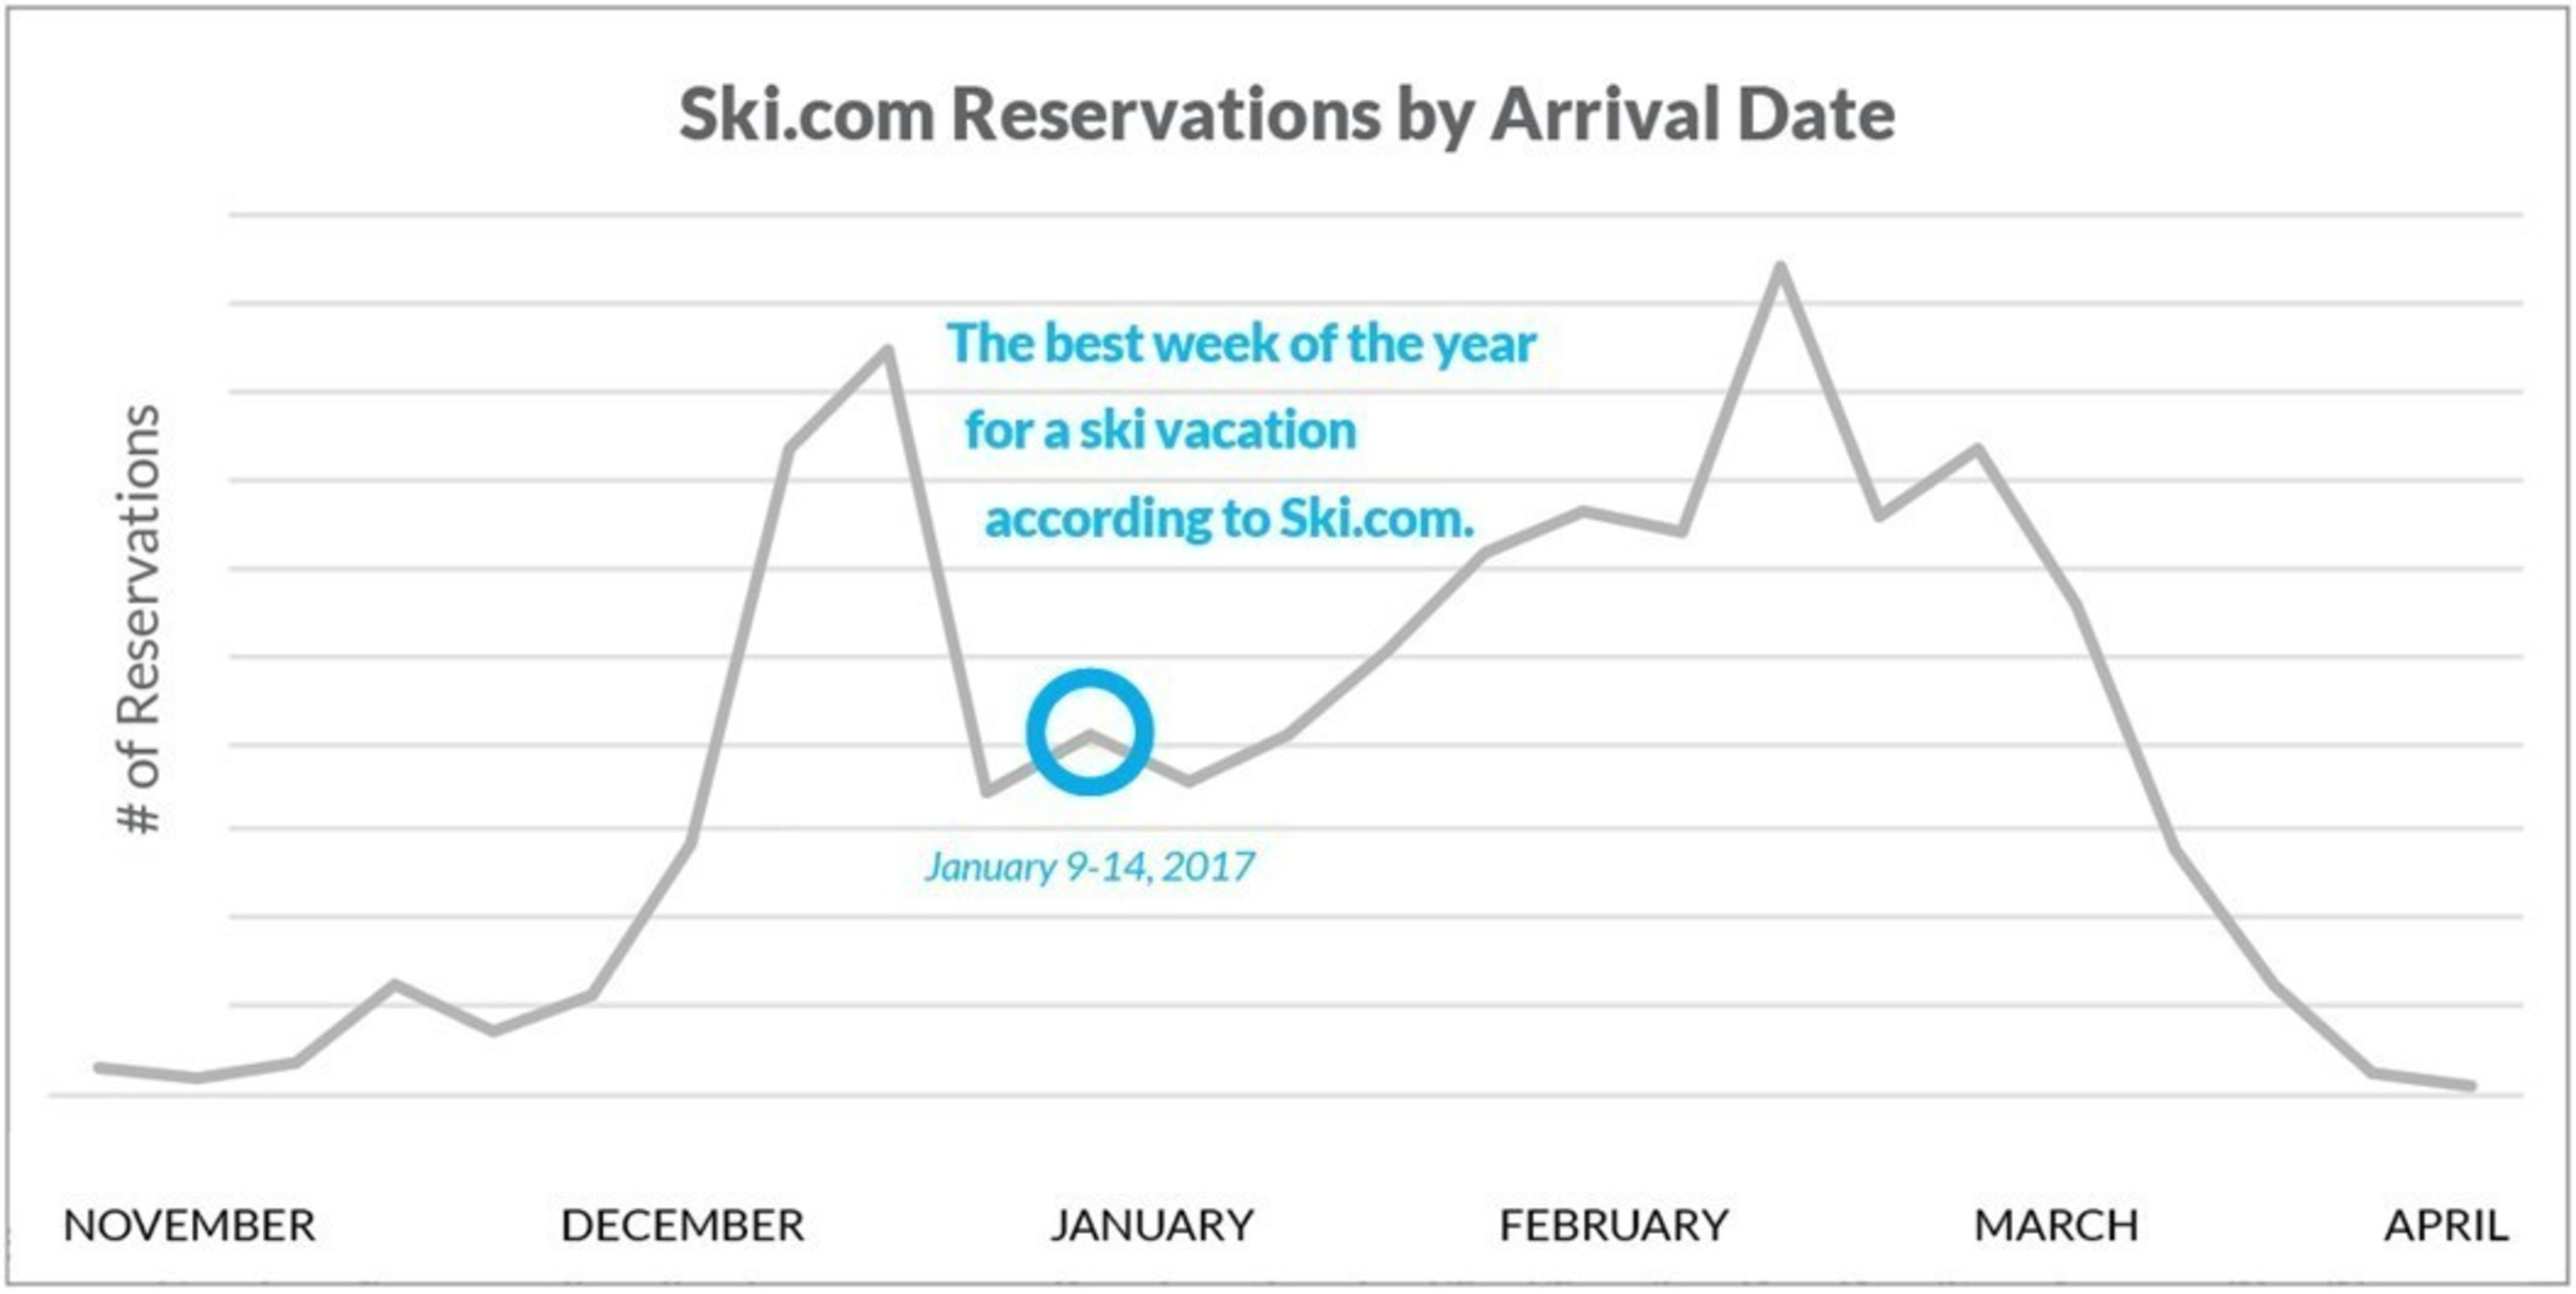 Ski.com Reservations by Arrival Date